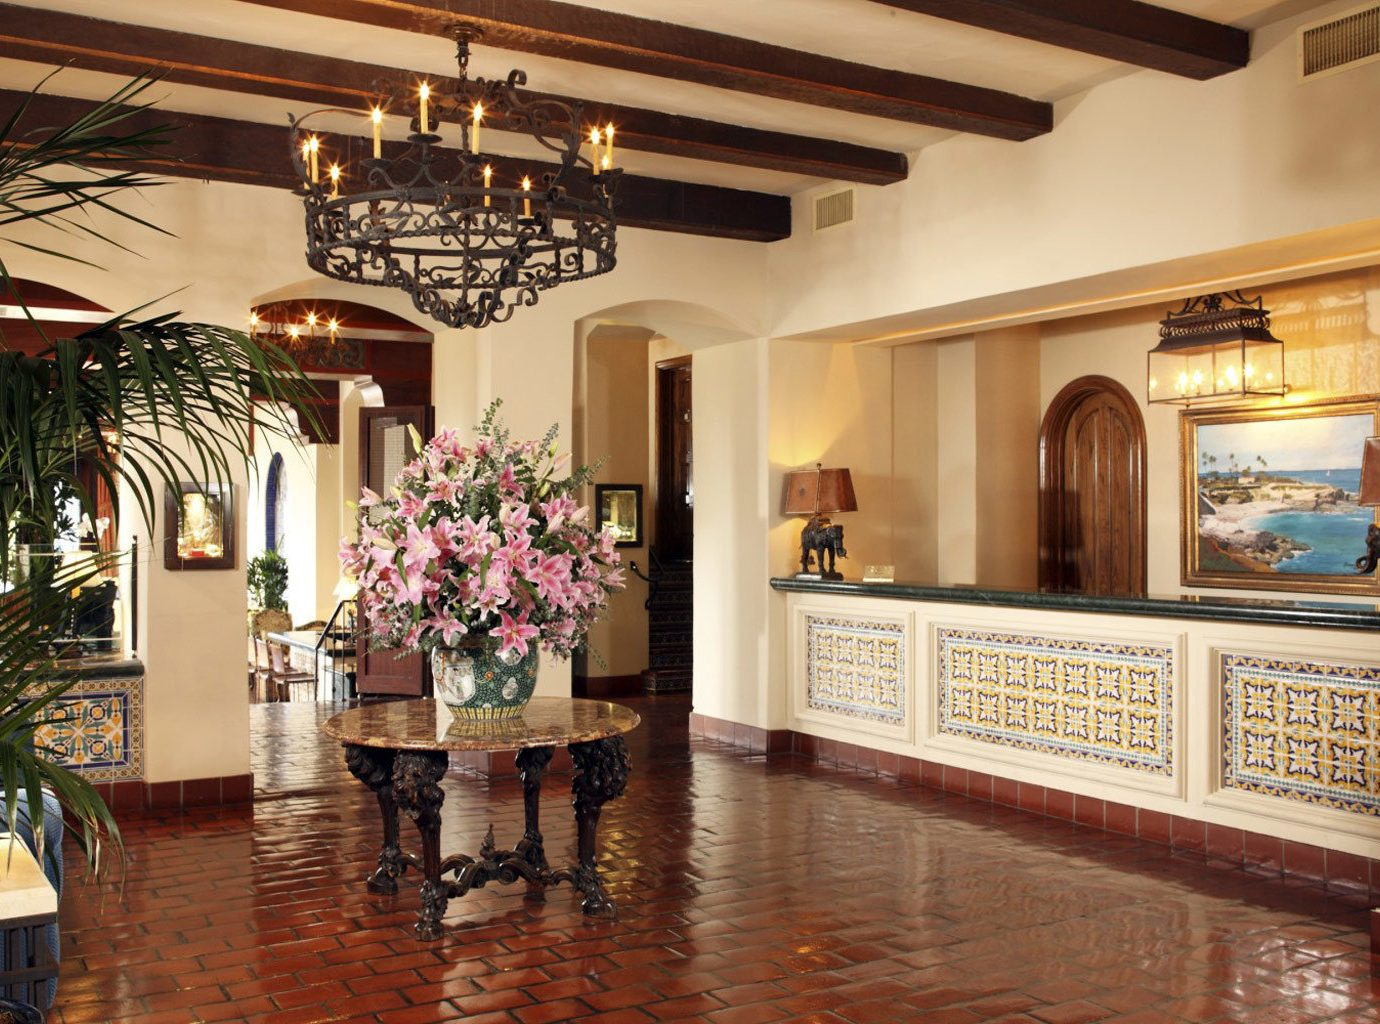 Elegant Hotels Lobby Luxury indoor floor room estate ceiling floristry home interior design mansion aisle Boutique hall several